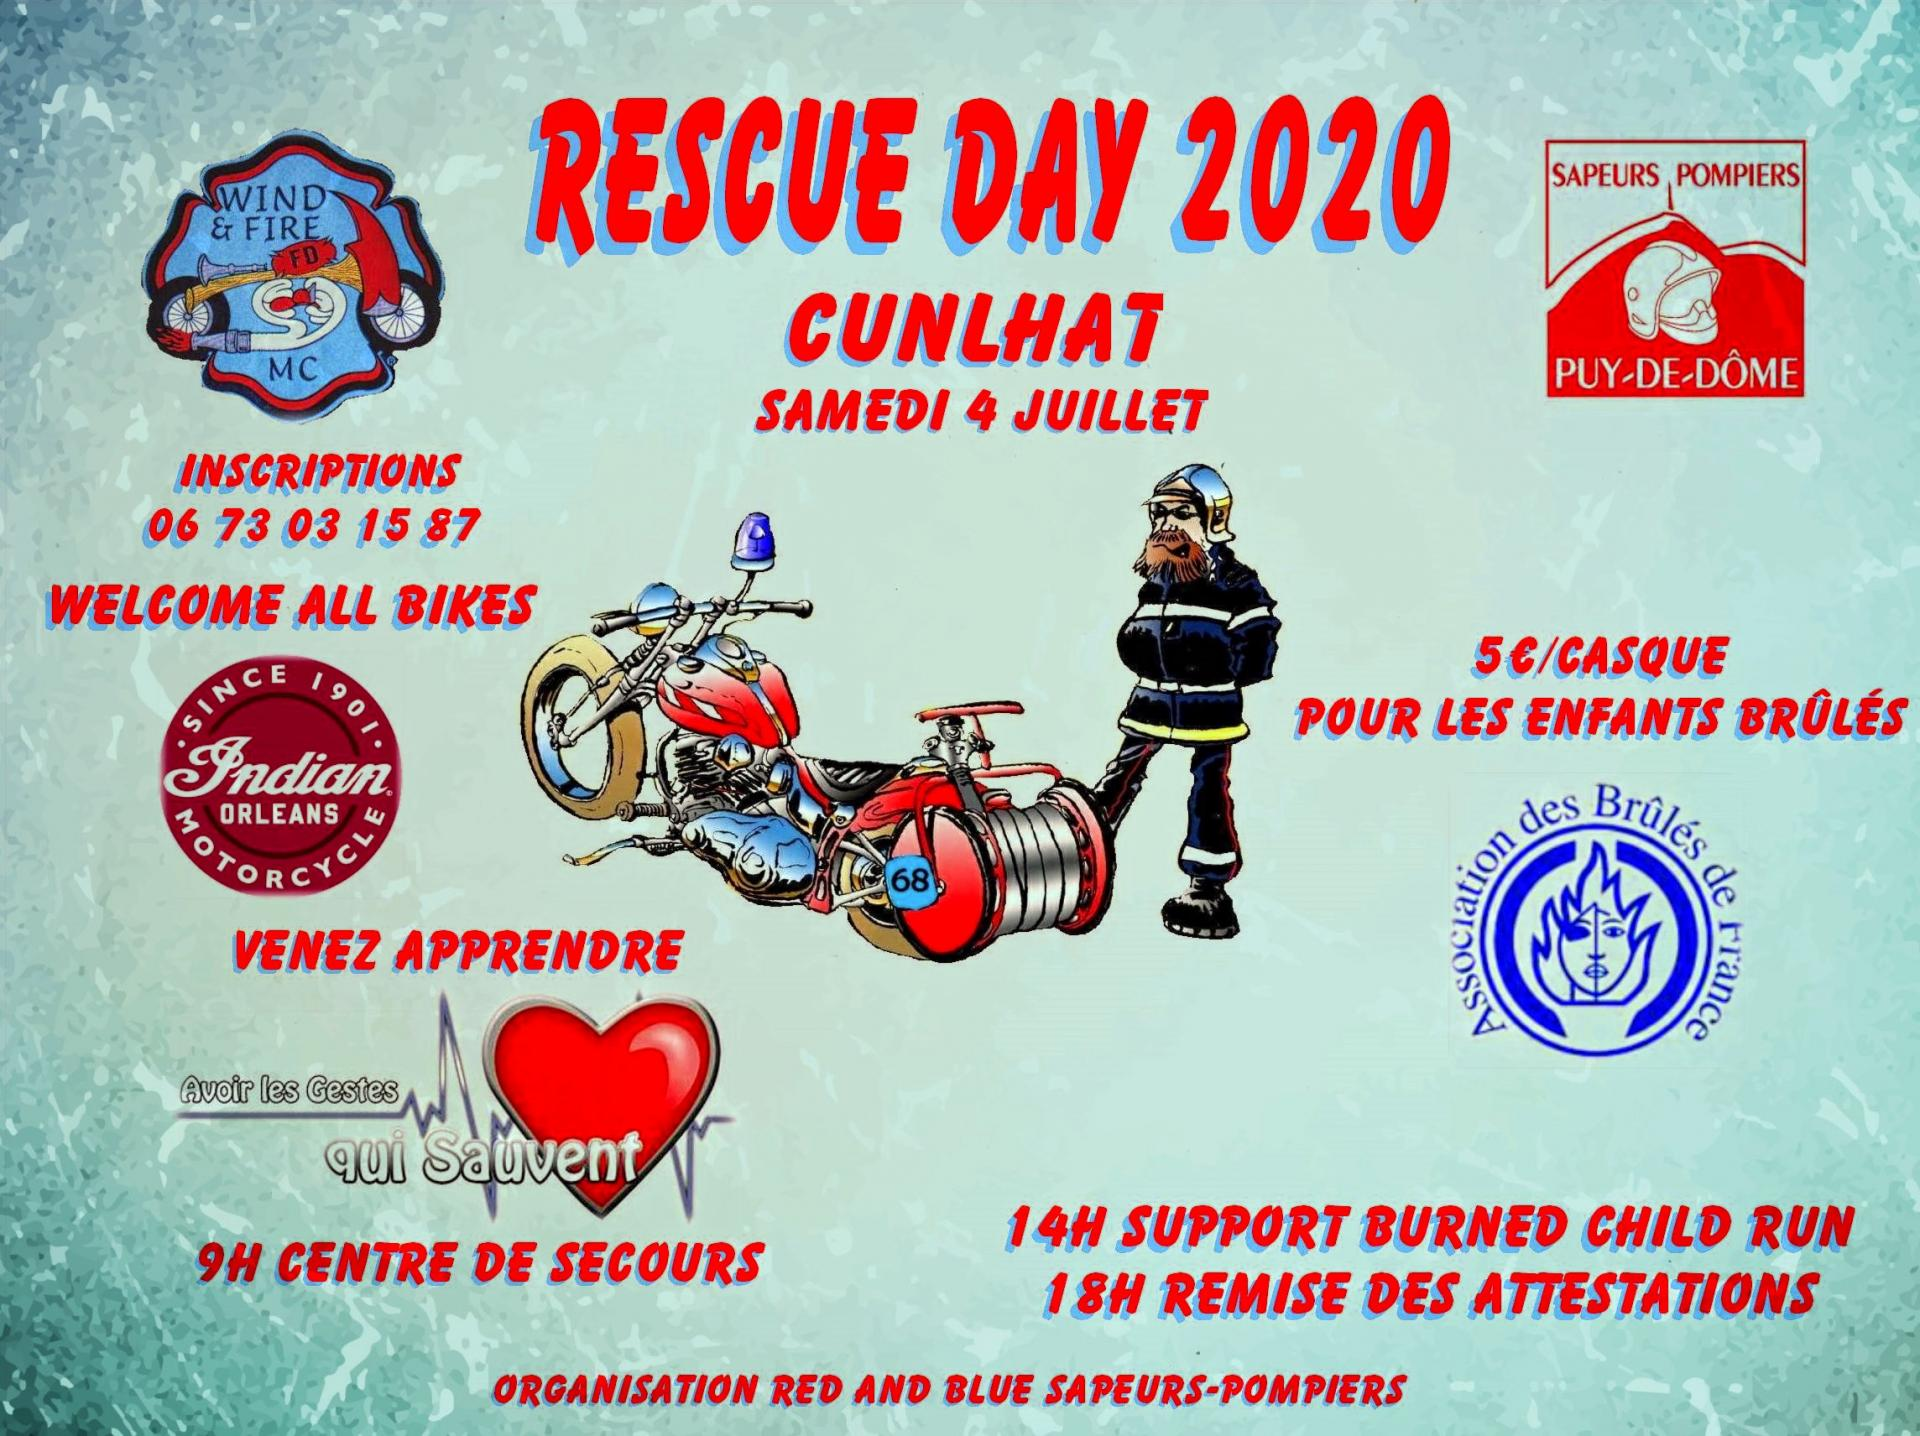 Cunlhat rescue day 2020 a